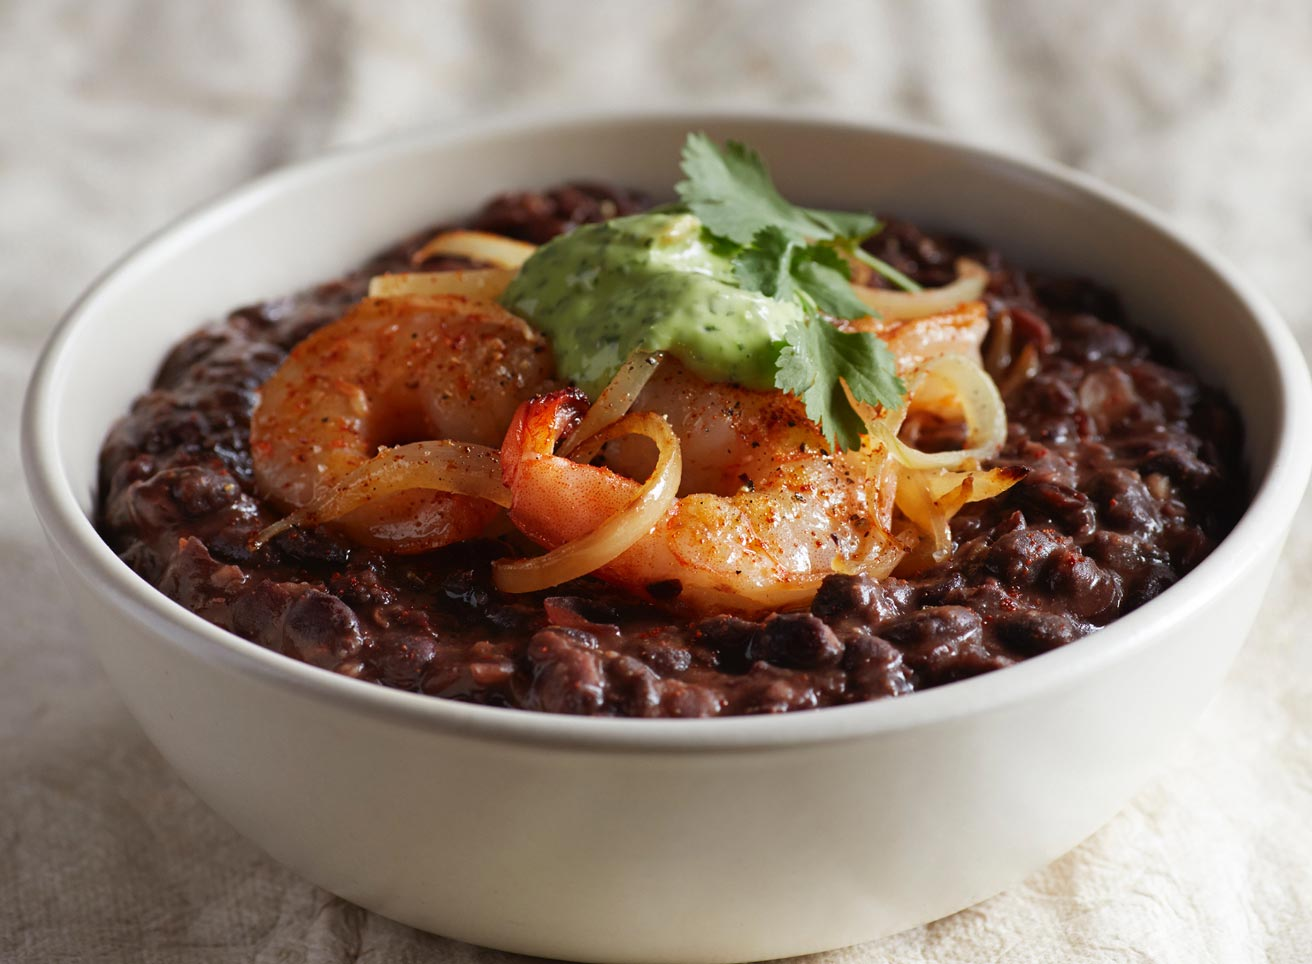 Baja Shrimp and Black Bean Bowl